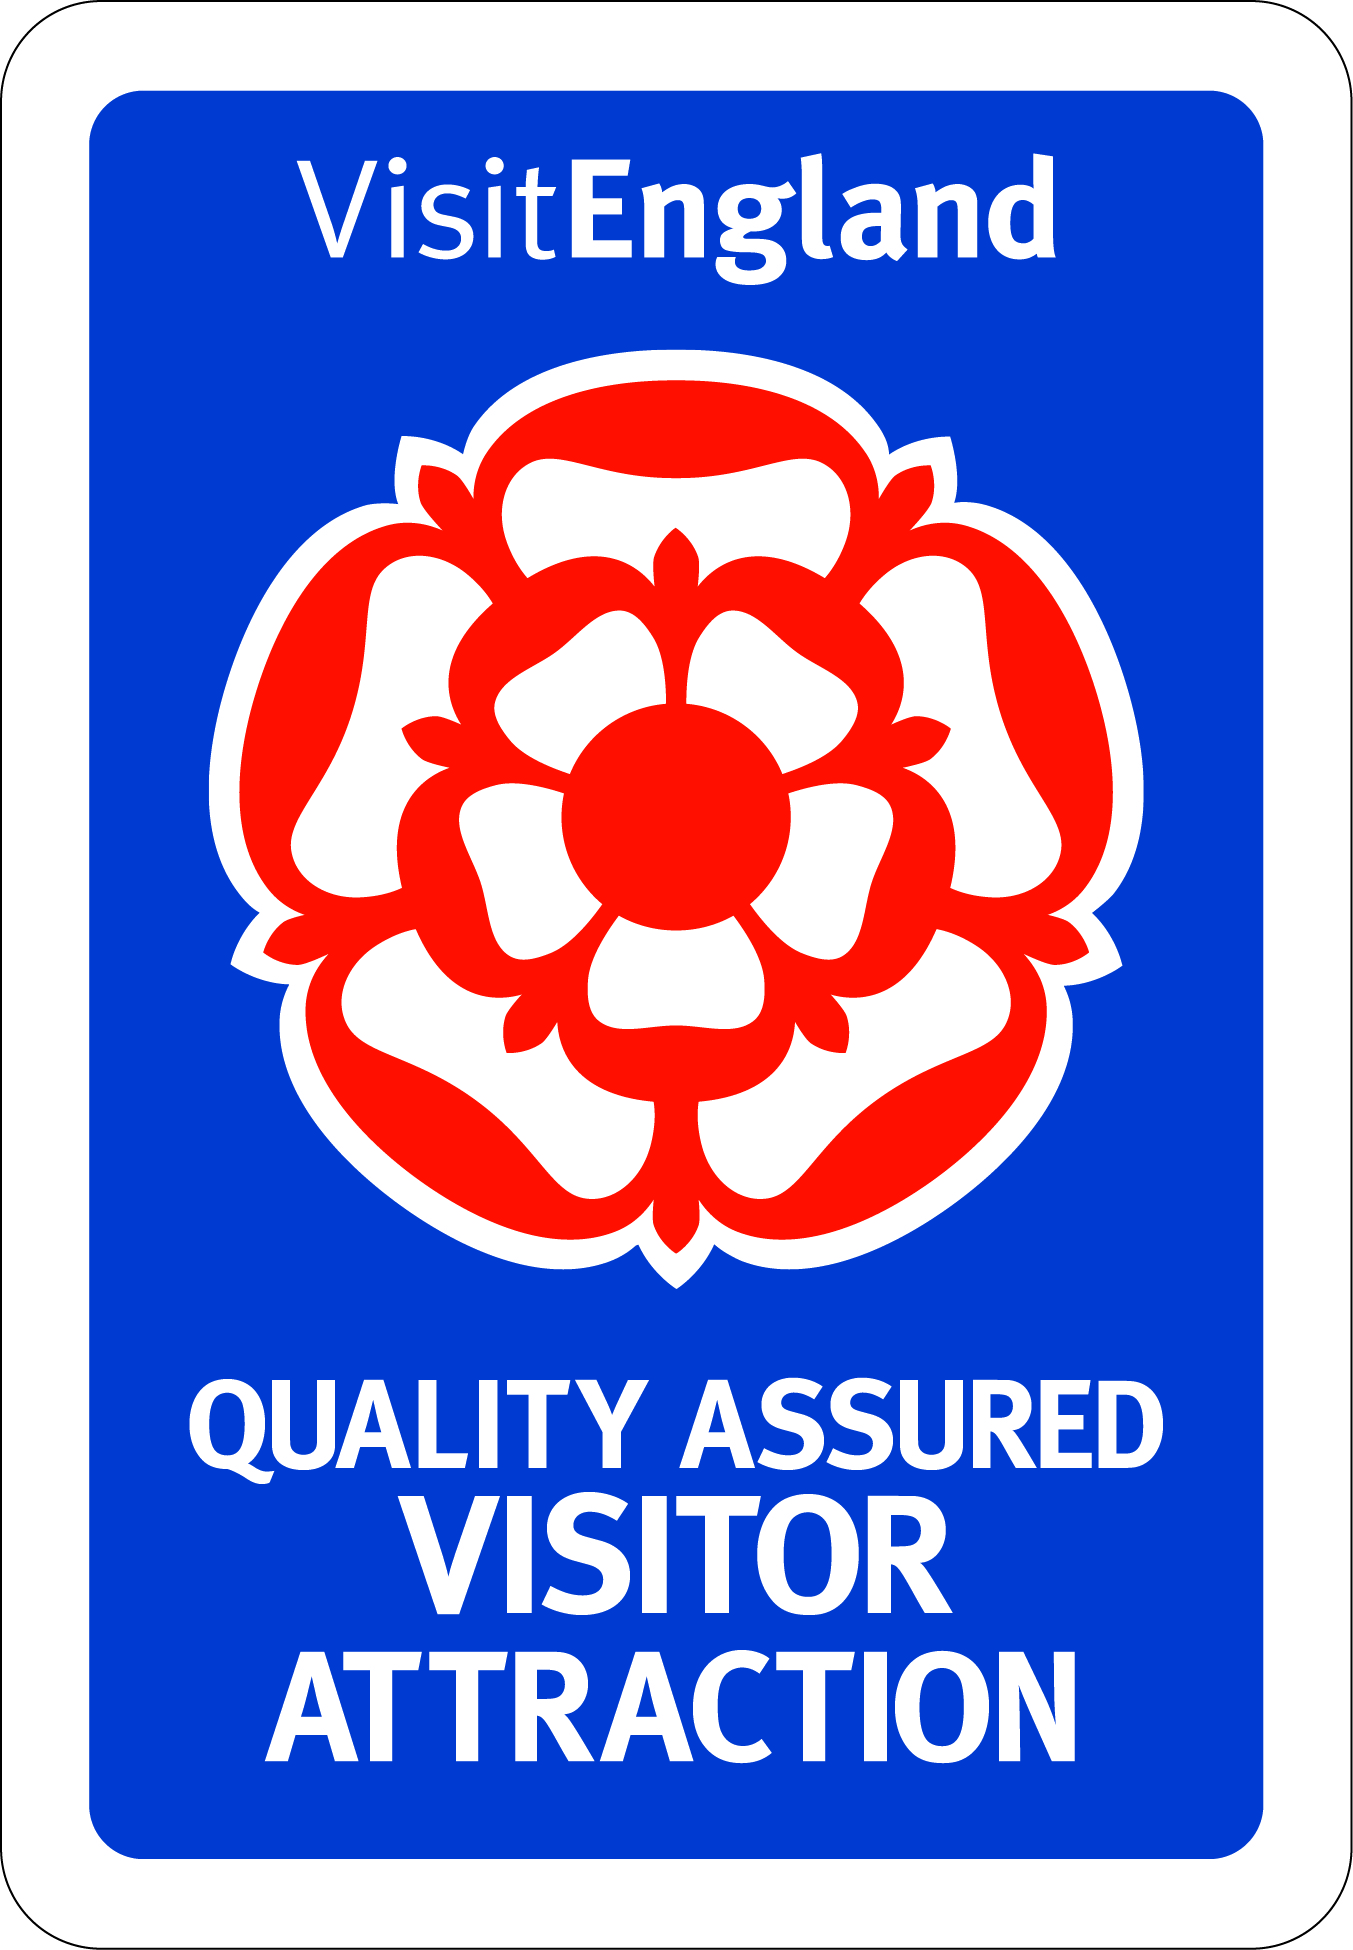 Visitor Attraction - Quality Assured Visitor Attraction